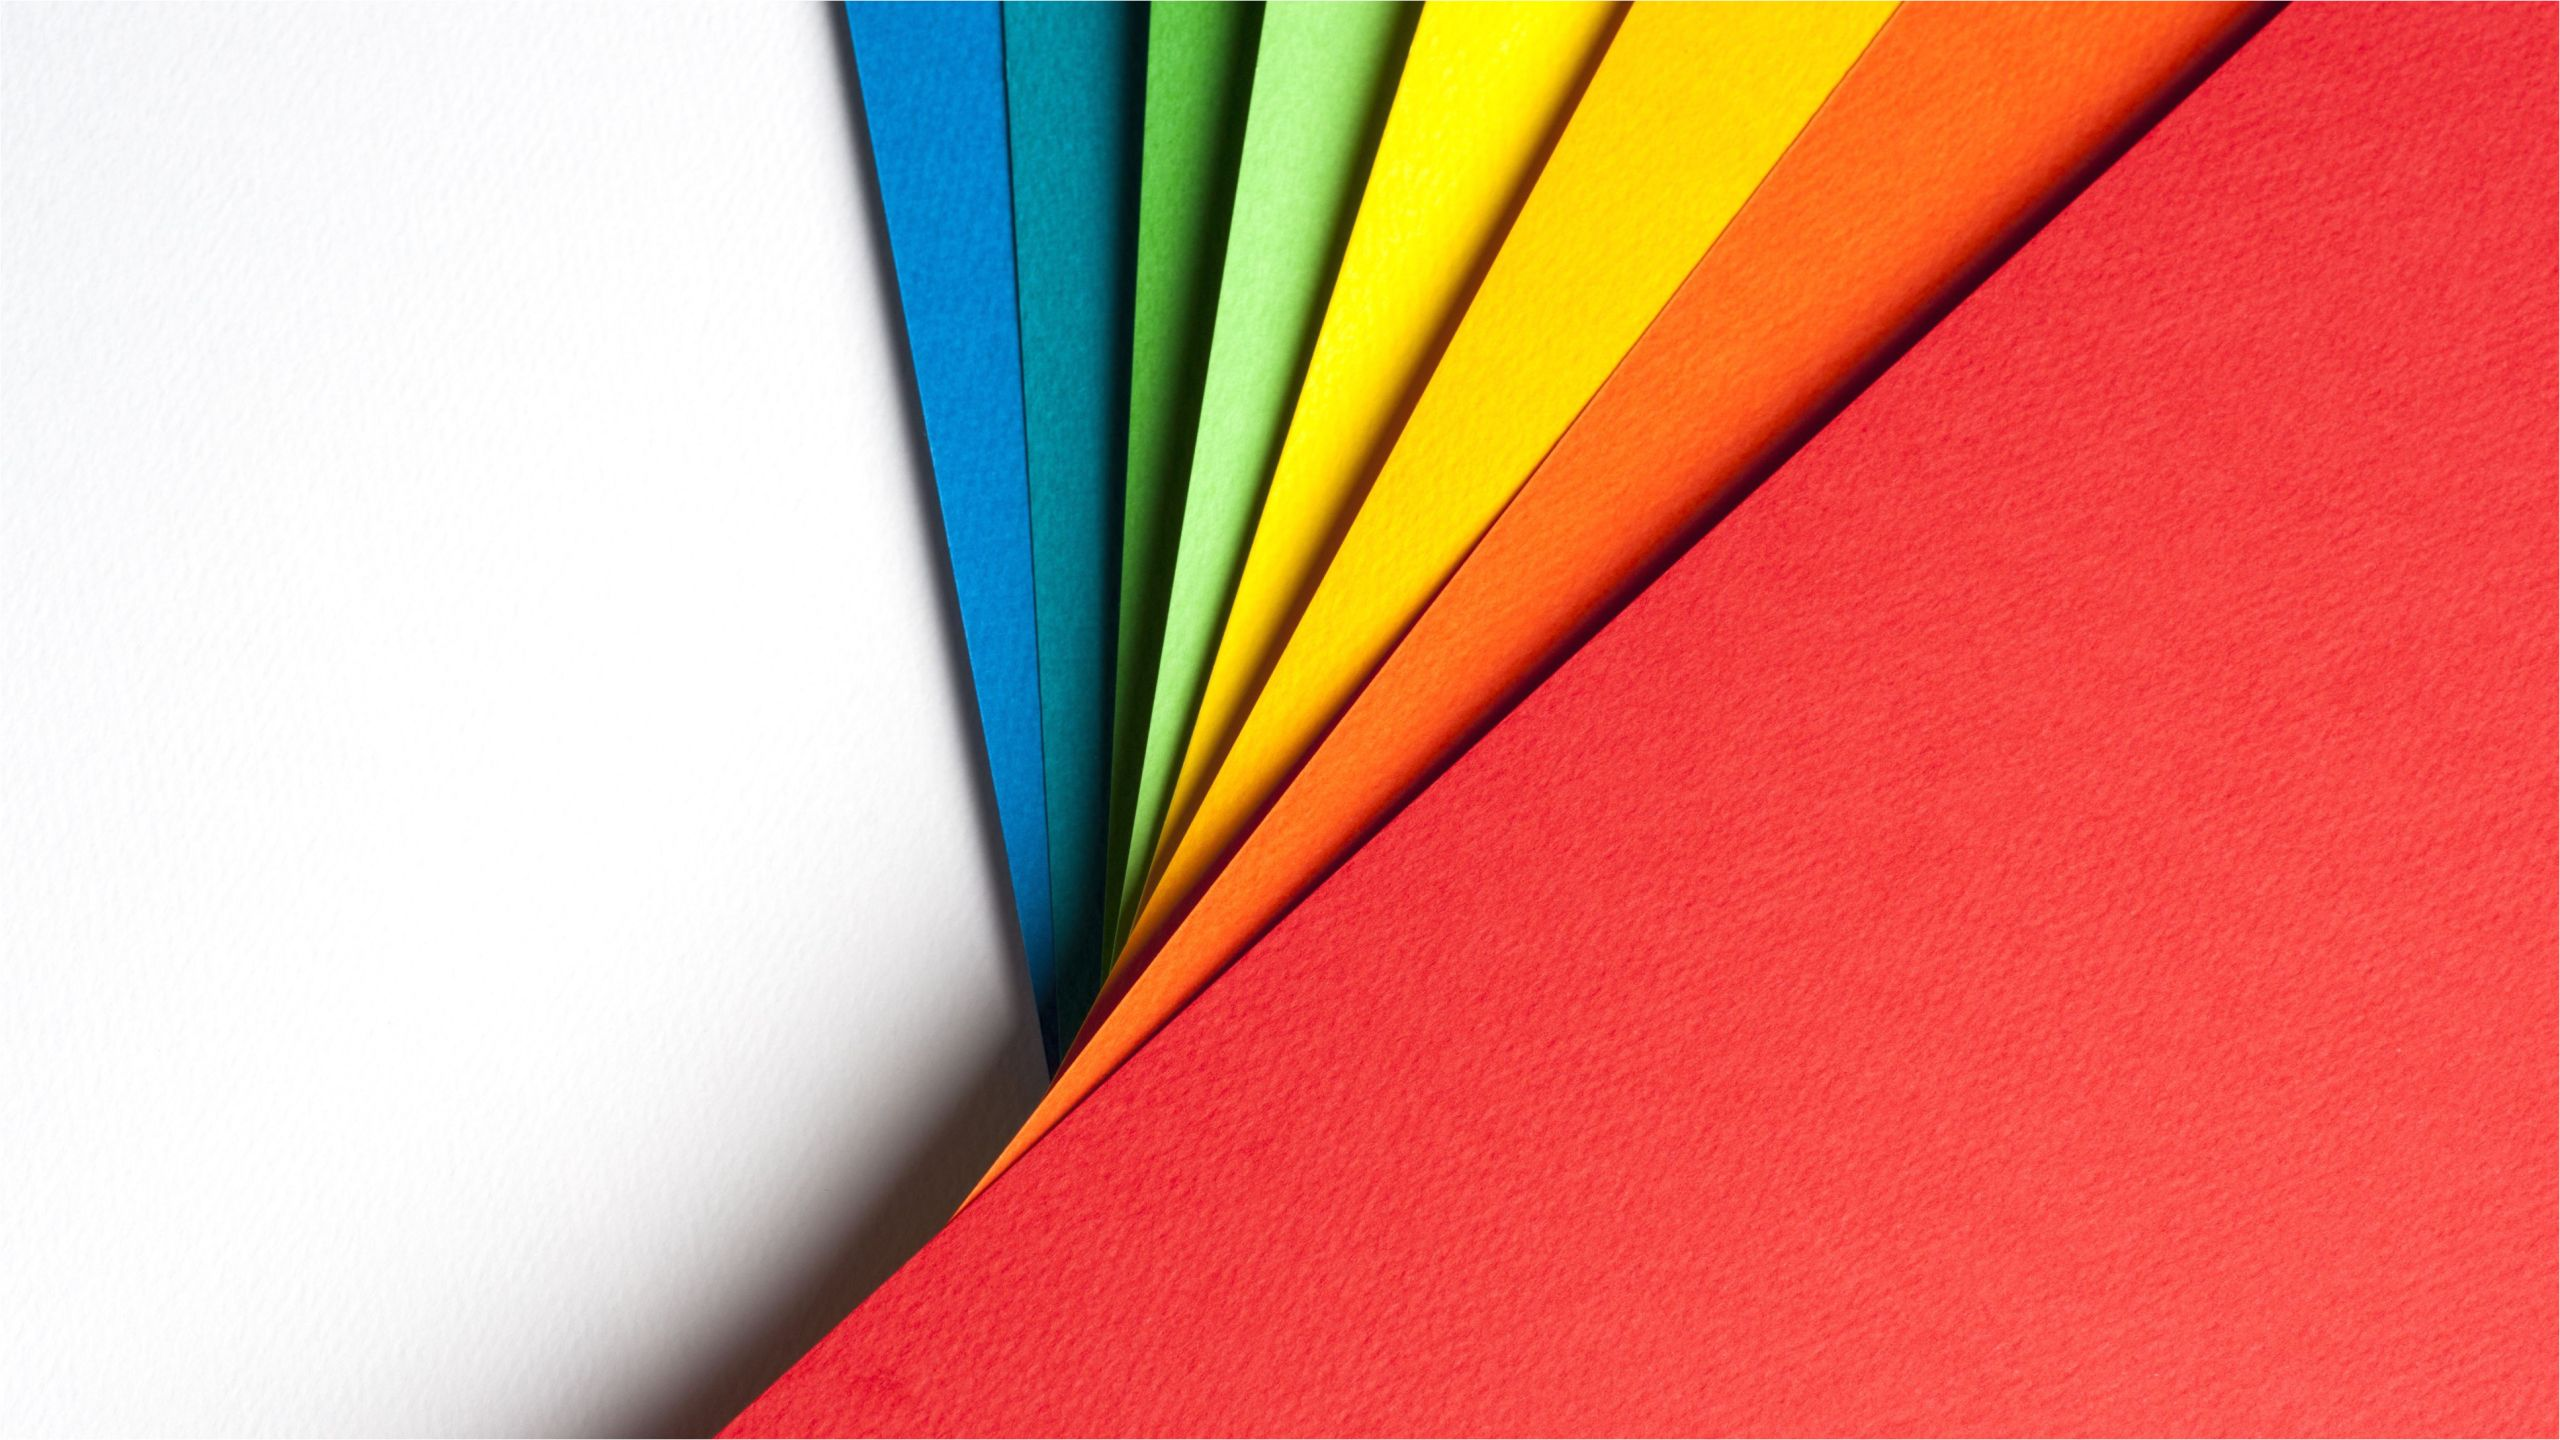 abstract background with color papers 582482845 571a91165f9b58857dedbbf8 jpg